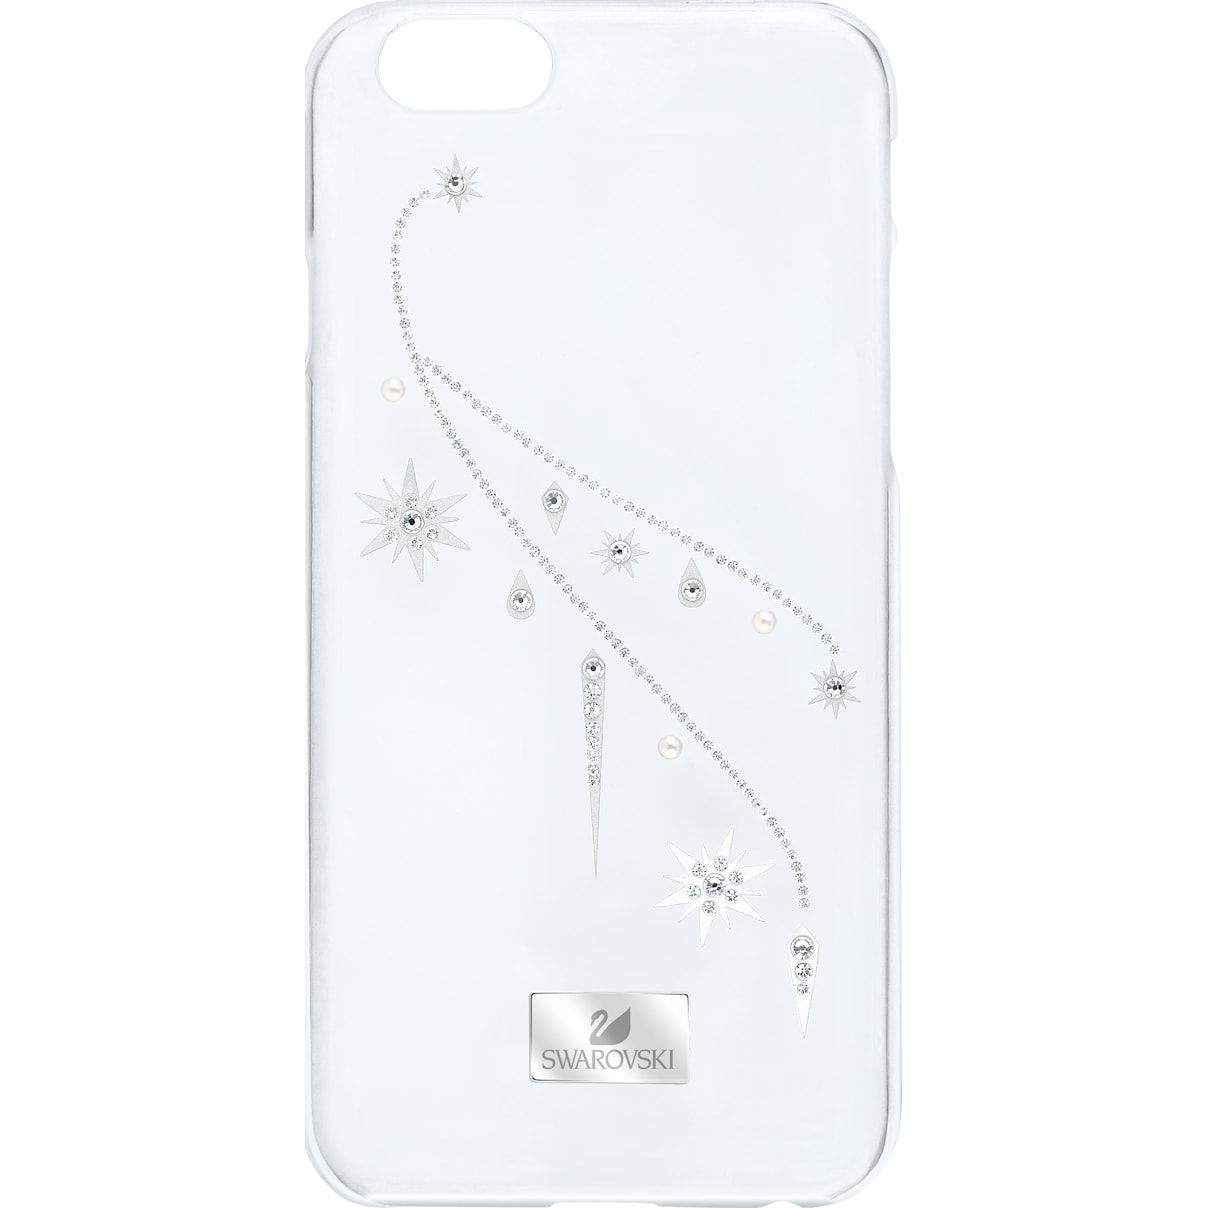 Swarovski Fantastic Smartphone Case with Bumper, iPhone® 7 Plus